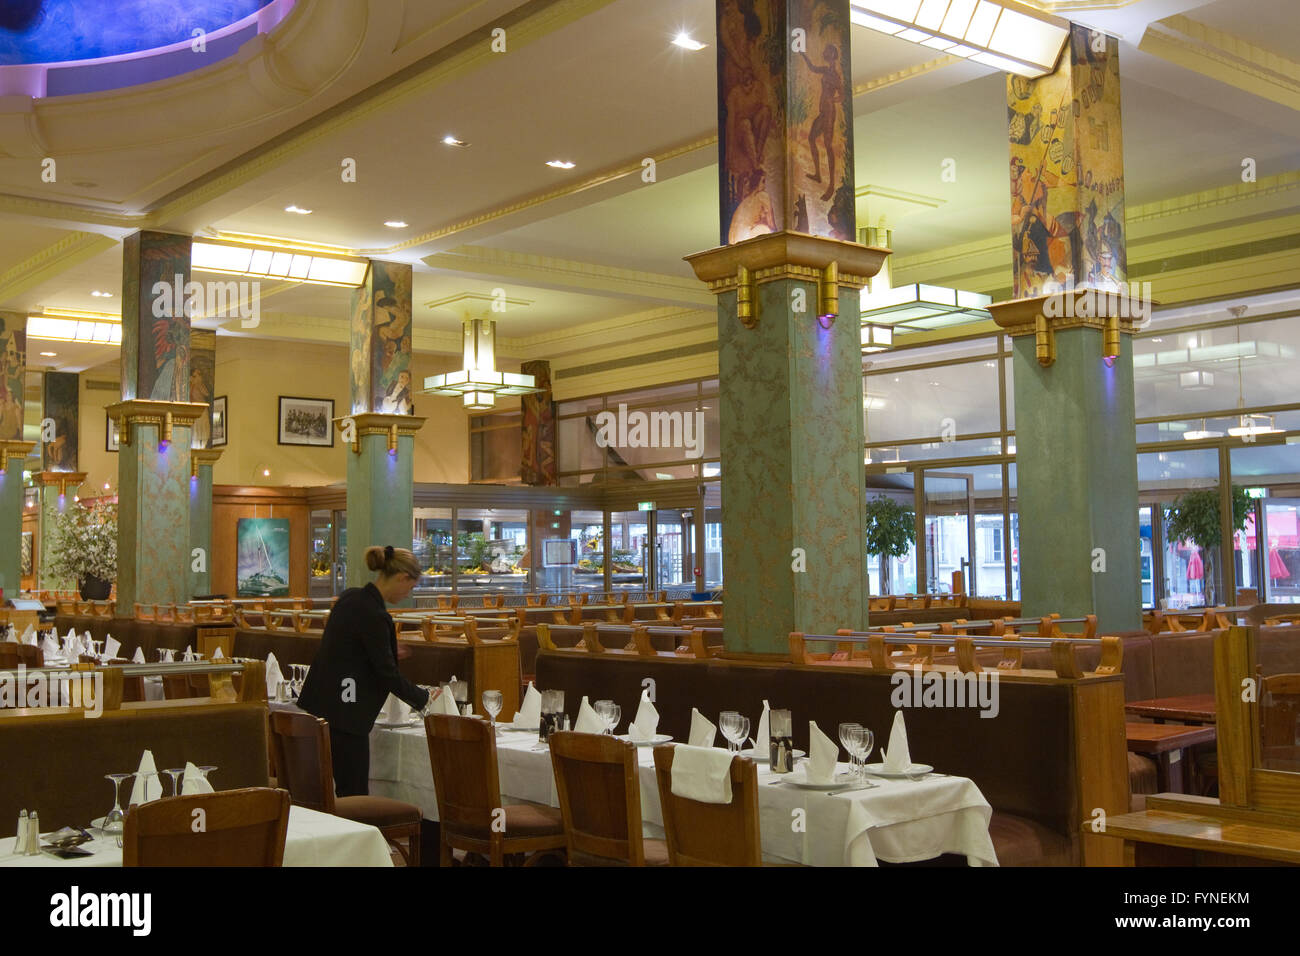 La Coupole restaurant in Montparnasse Paris France Stock Photo